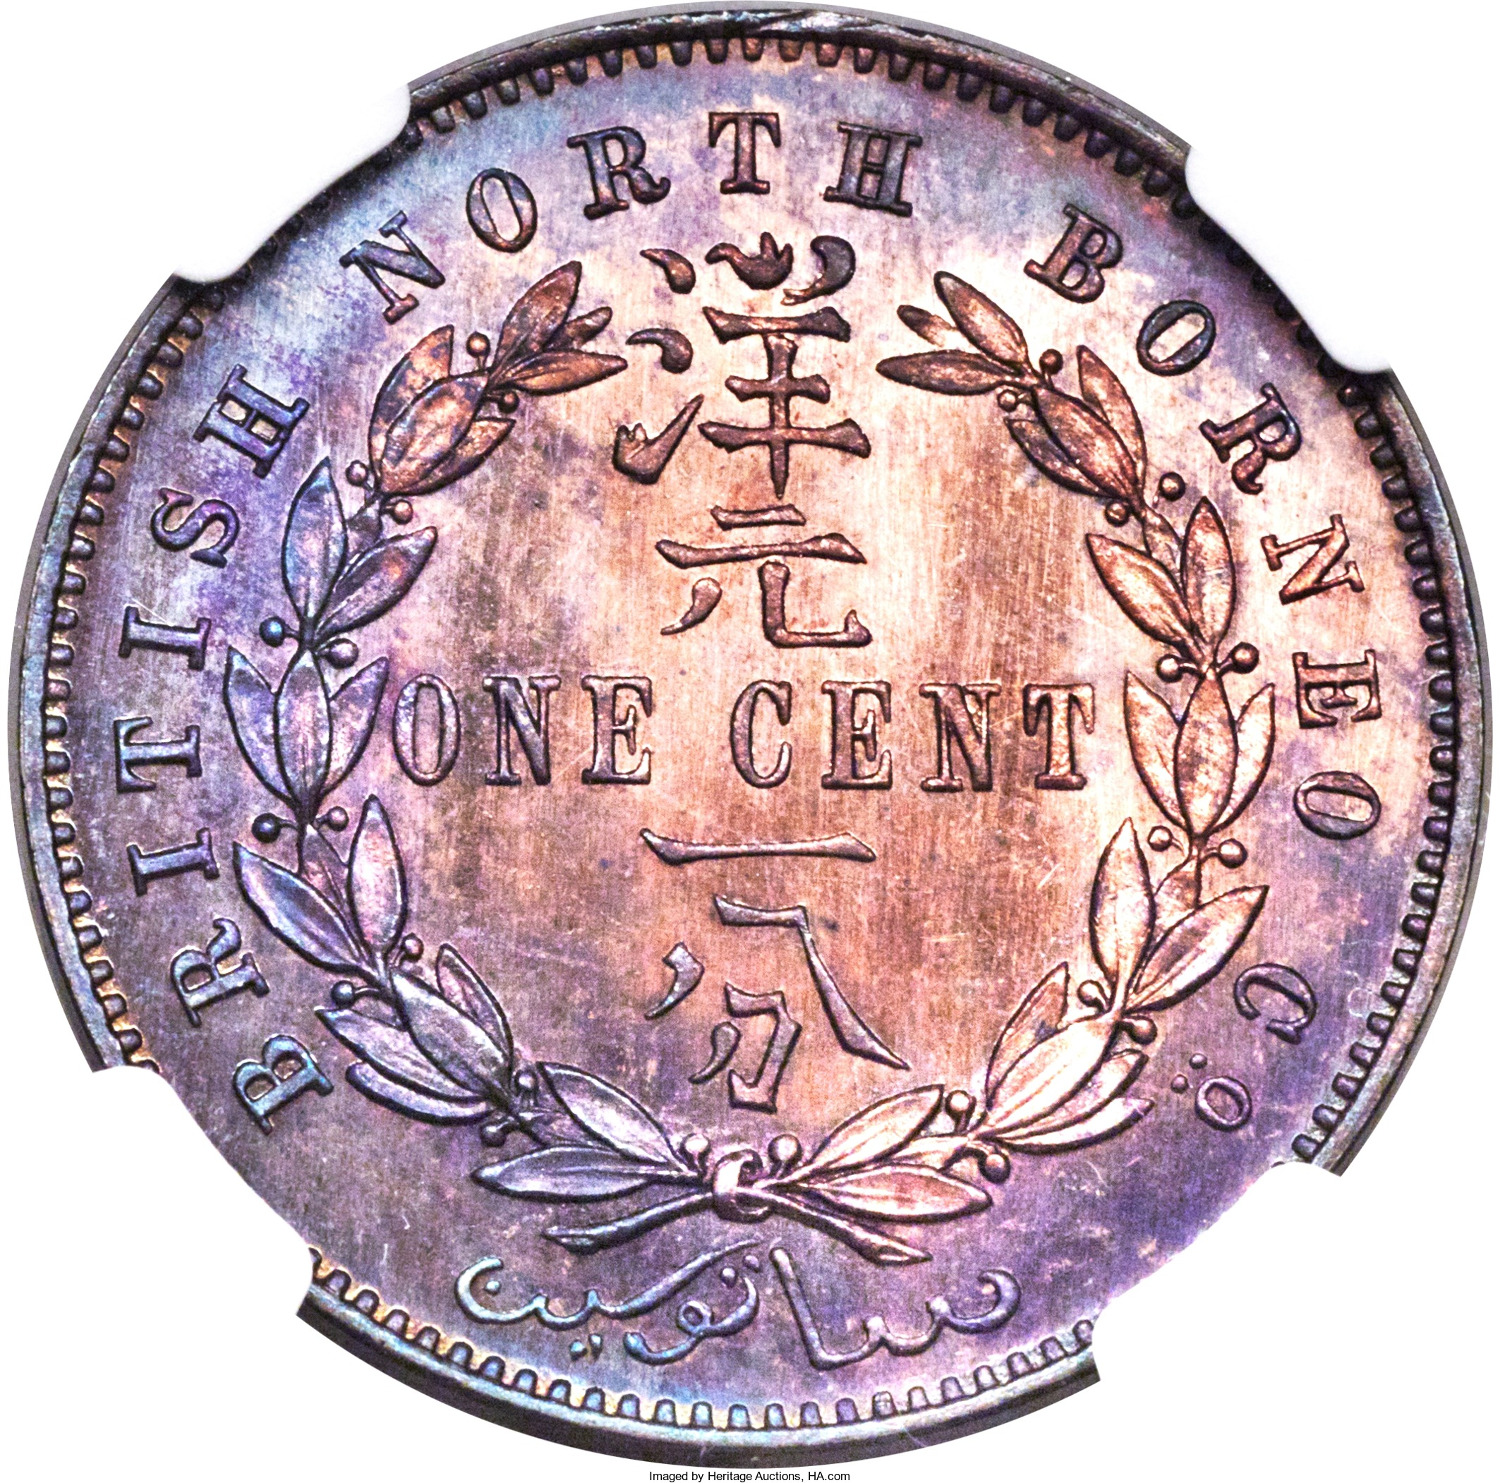 One Cent 1884: Photo British North Borneo 1884-H cent